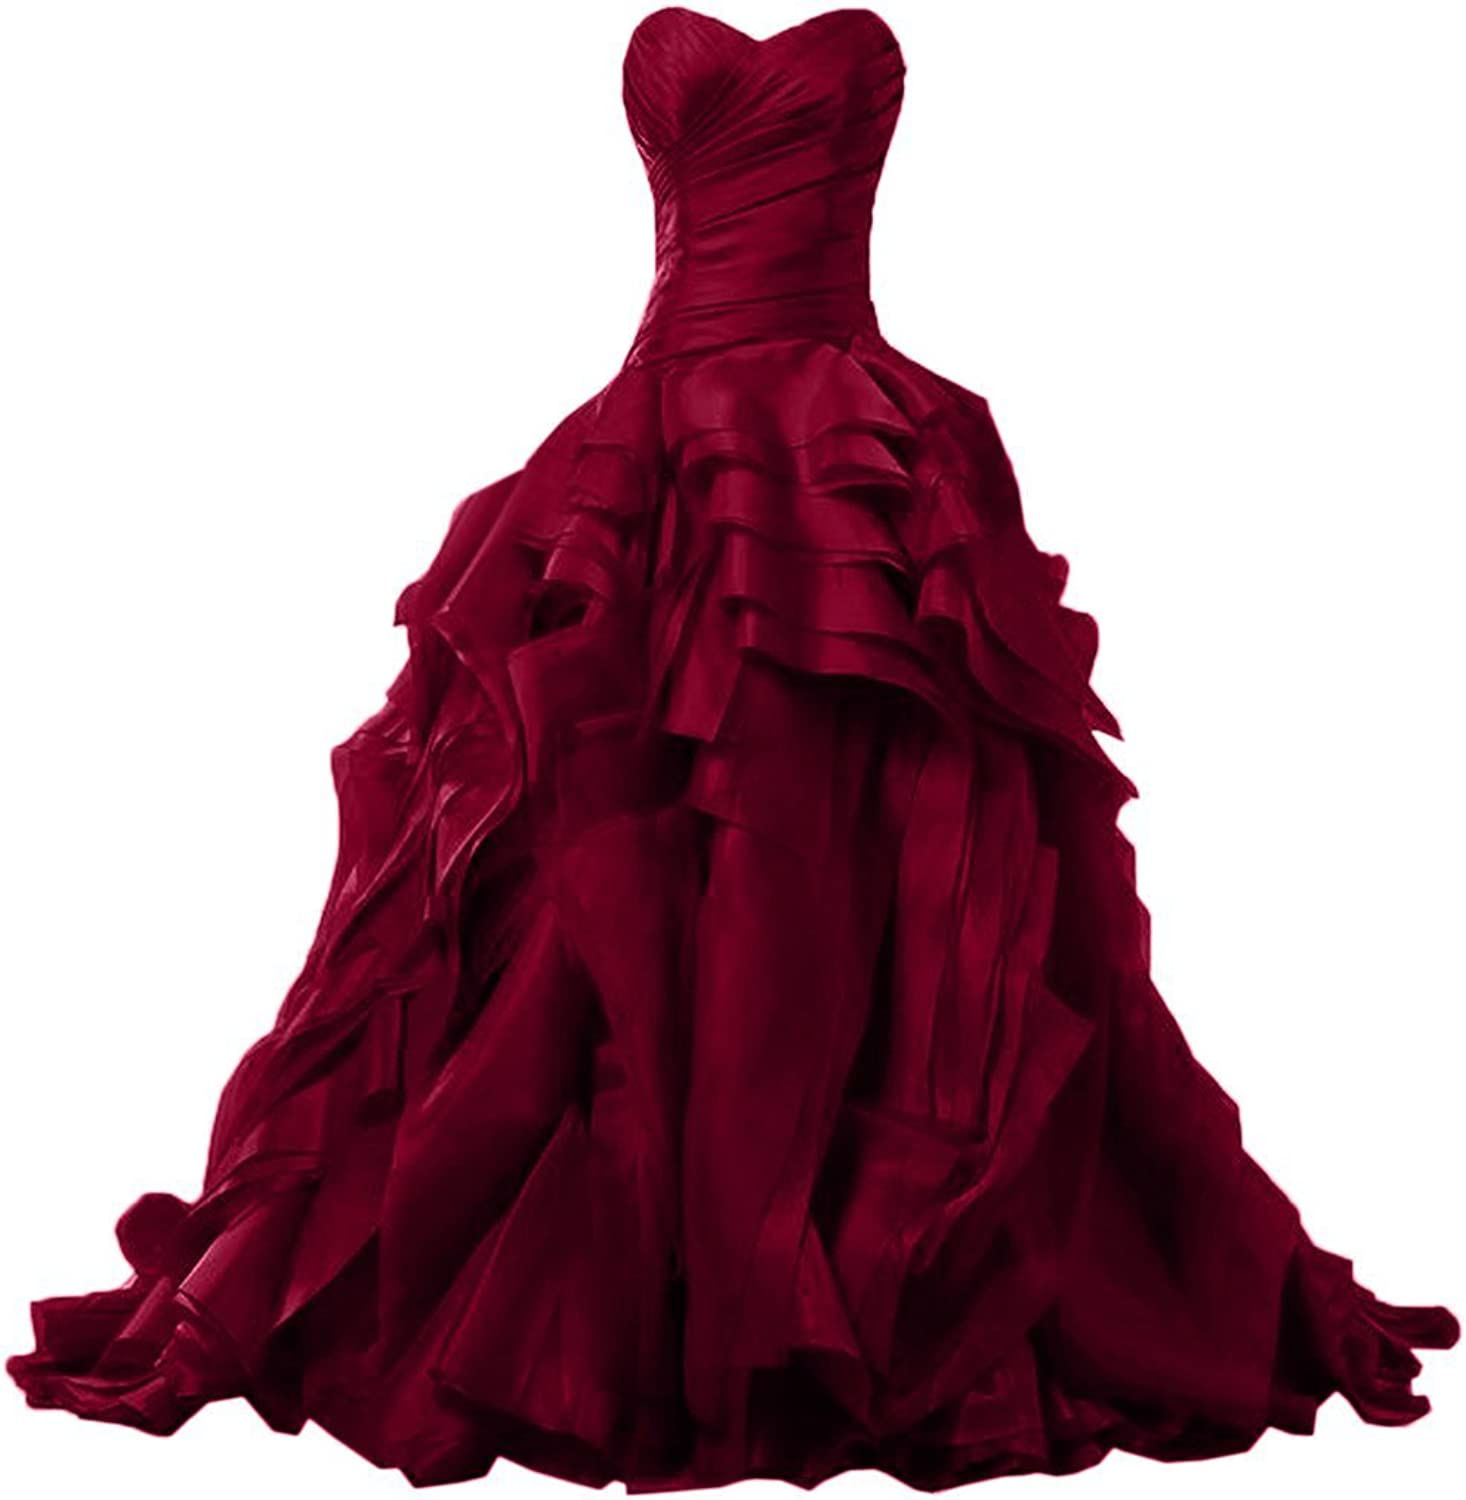 Bonnie clothing Women's Ball Gown Sweetheart Neck Formal Prom Dress